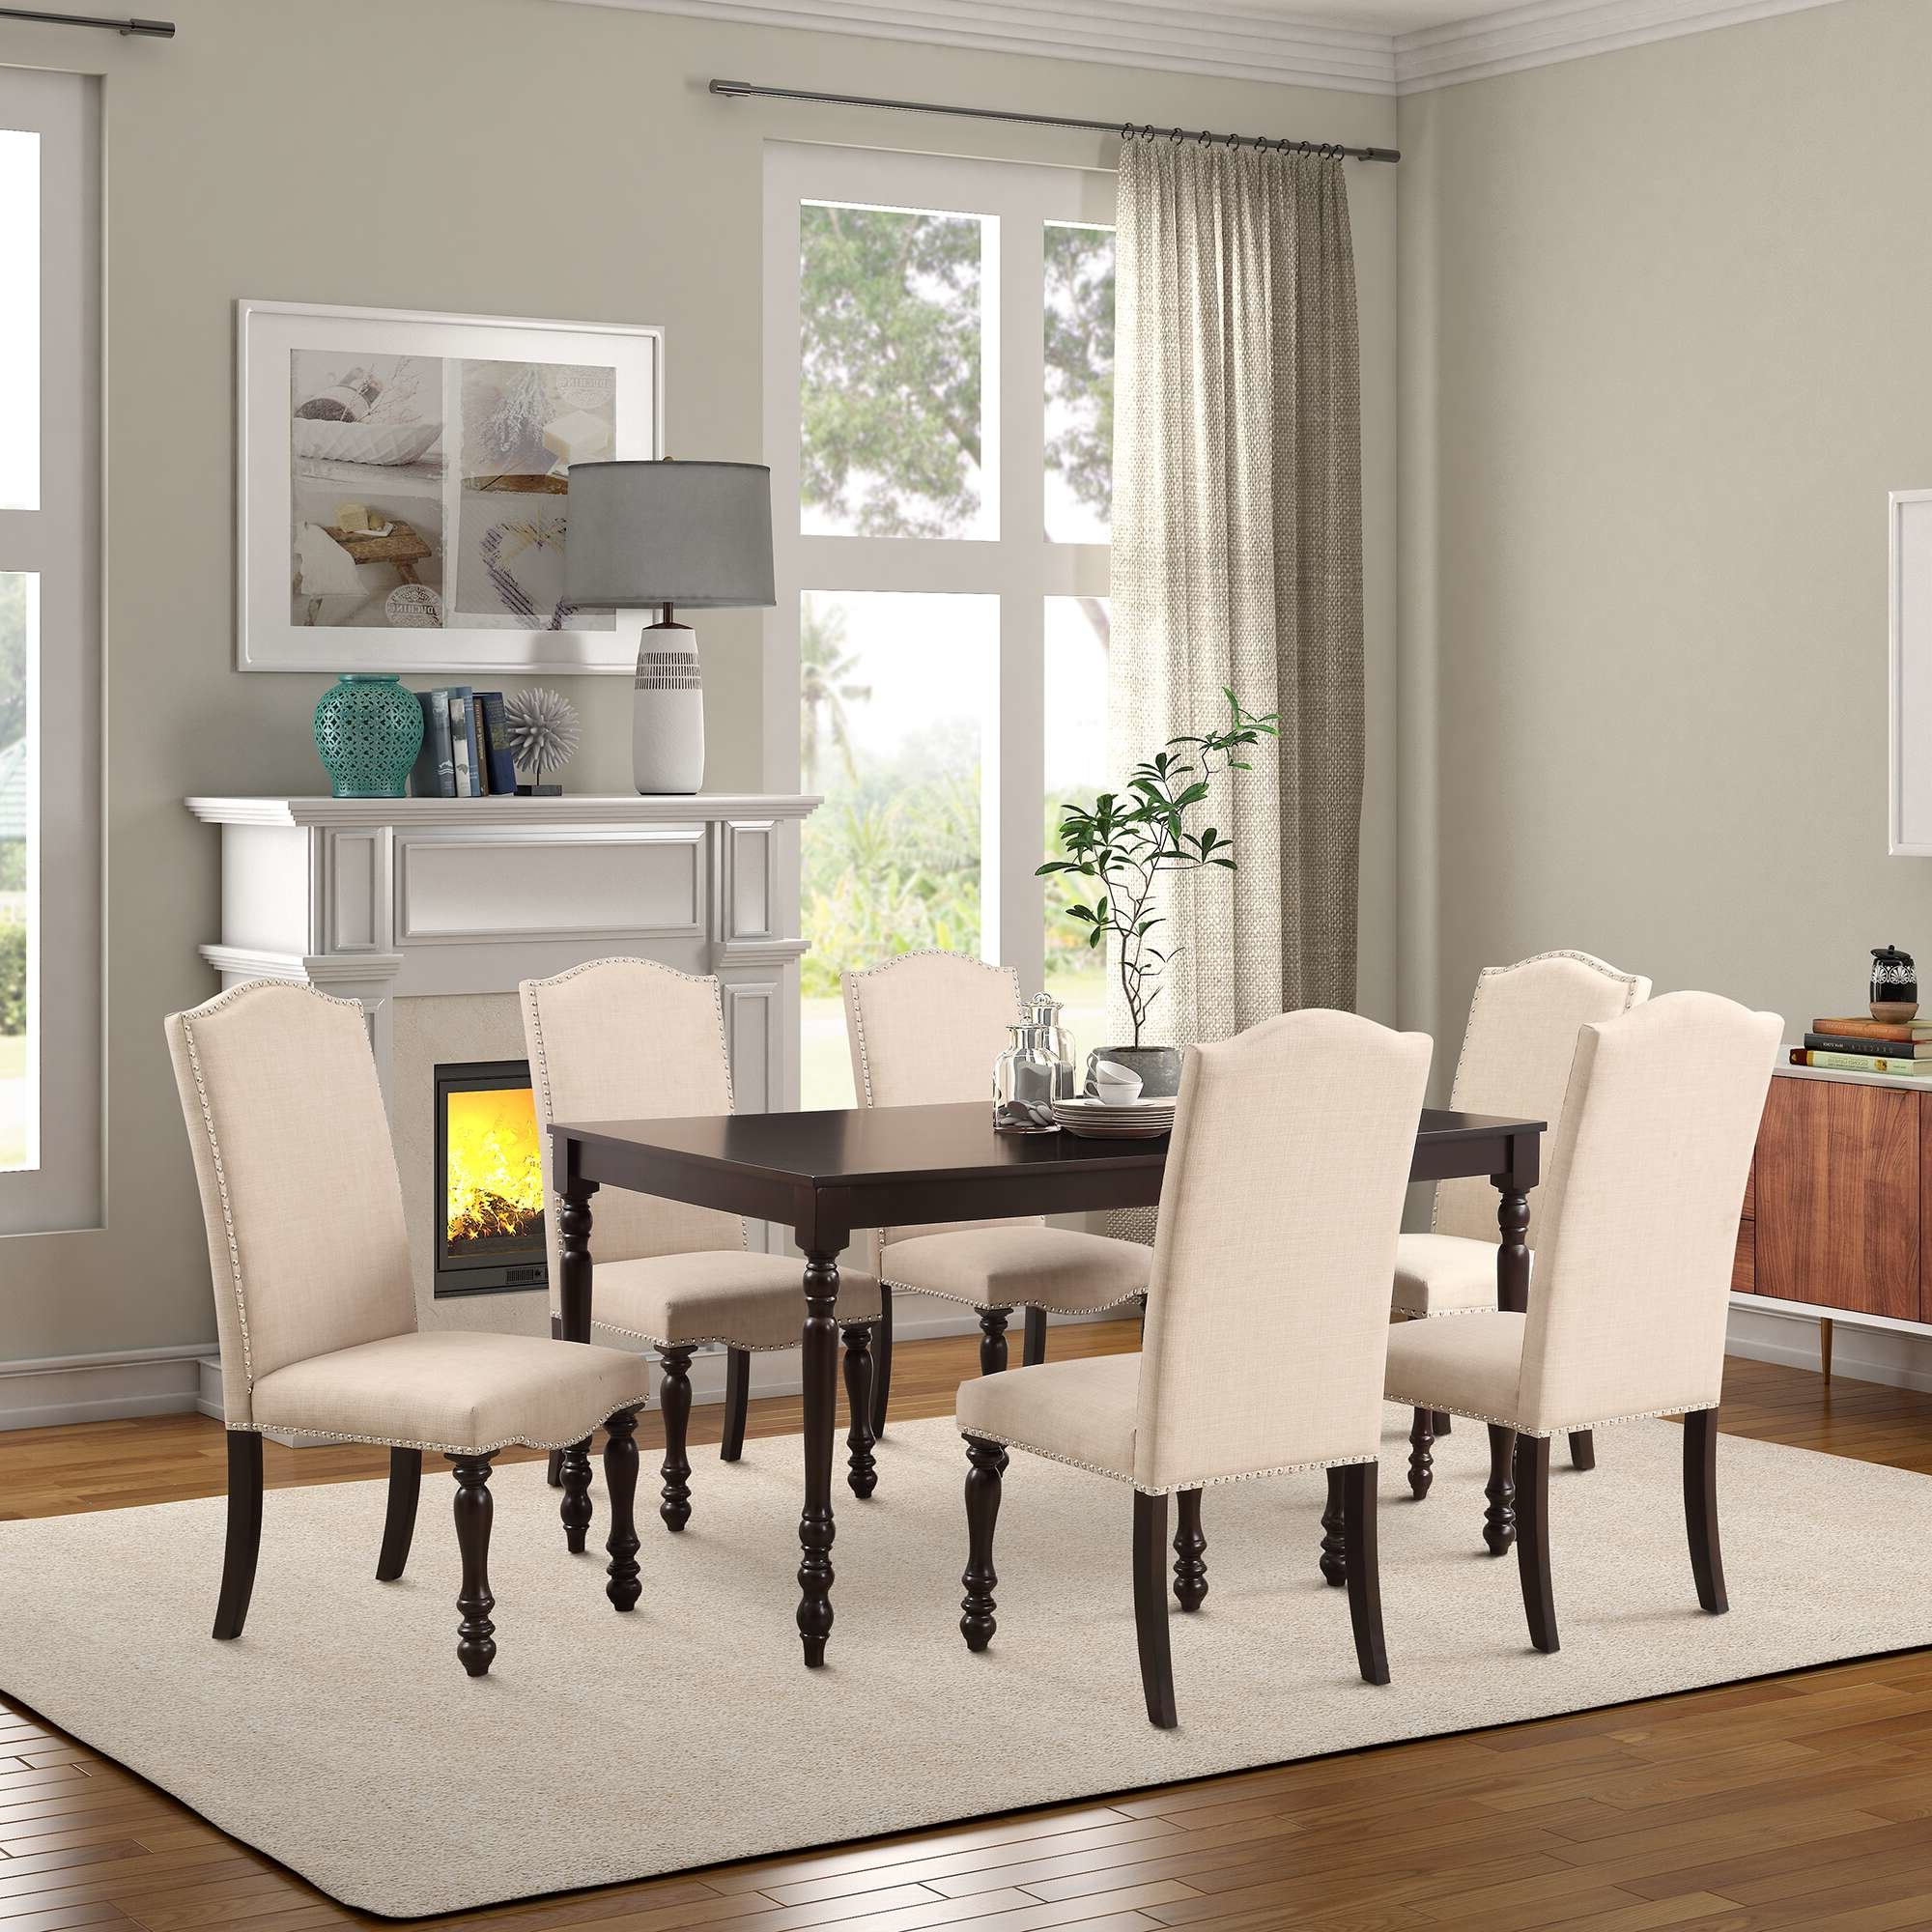 Abarca 7 Piece Solid Wood Dining Set Regarding Newest Laconia 7 Pieces Solid Wood Dining Sets (set Of 7) (View 3 of 20)